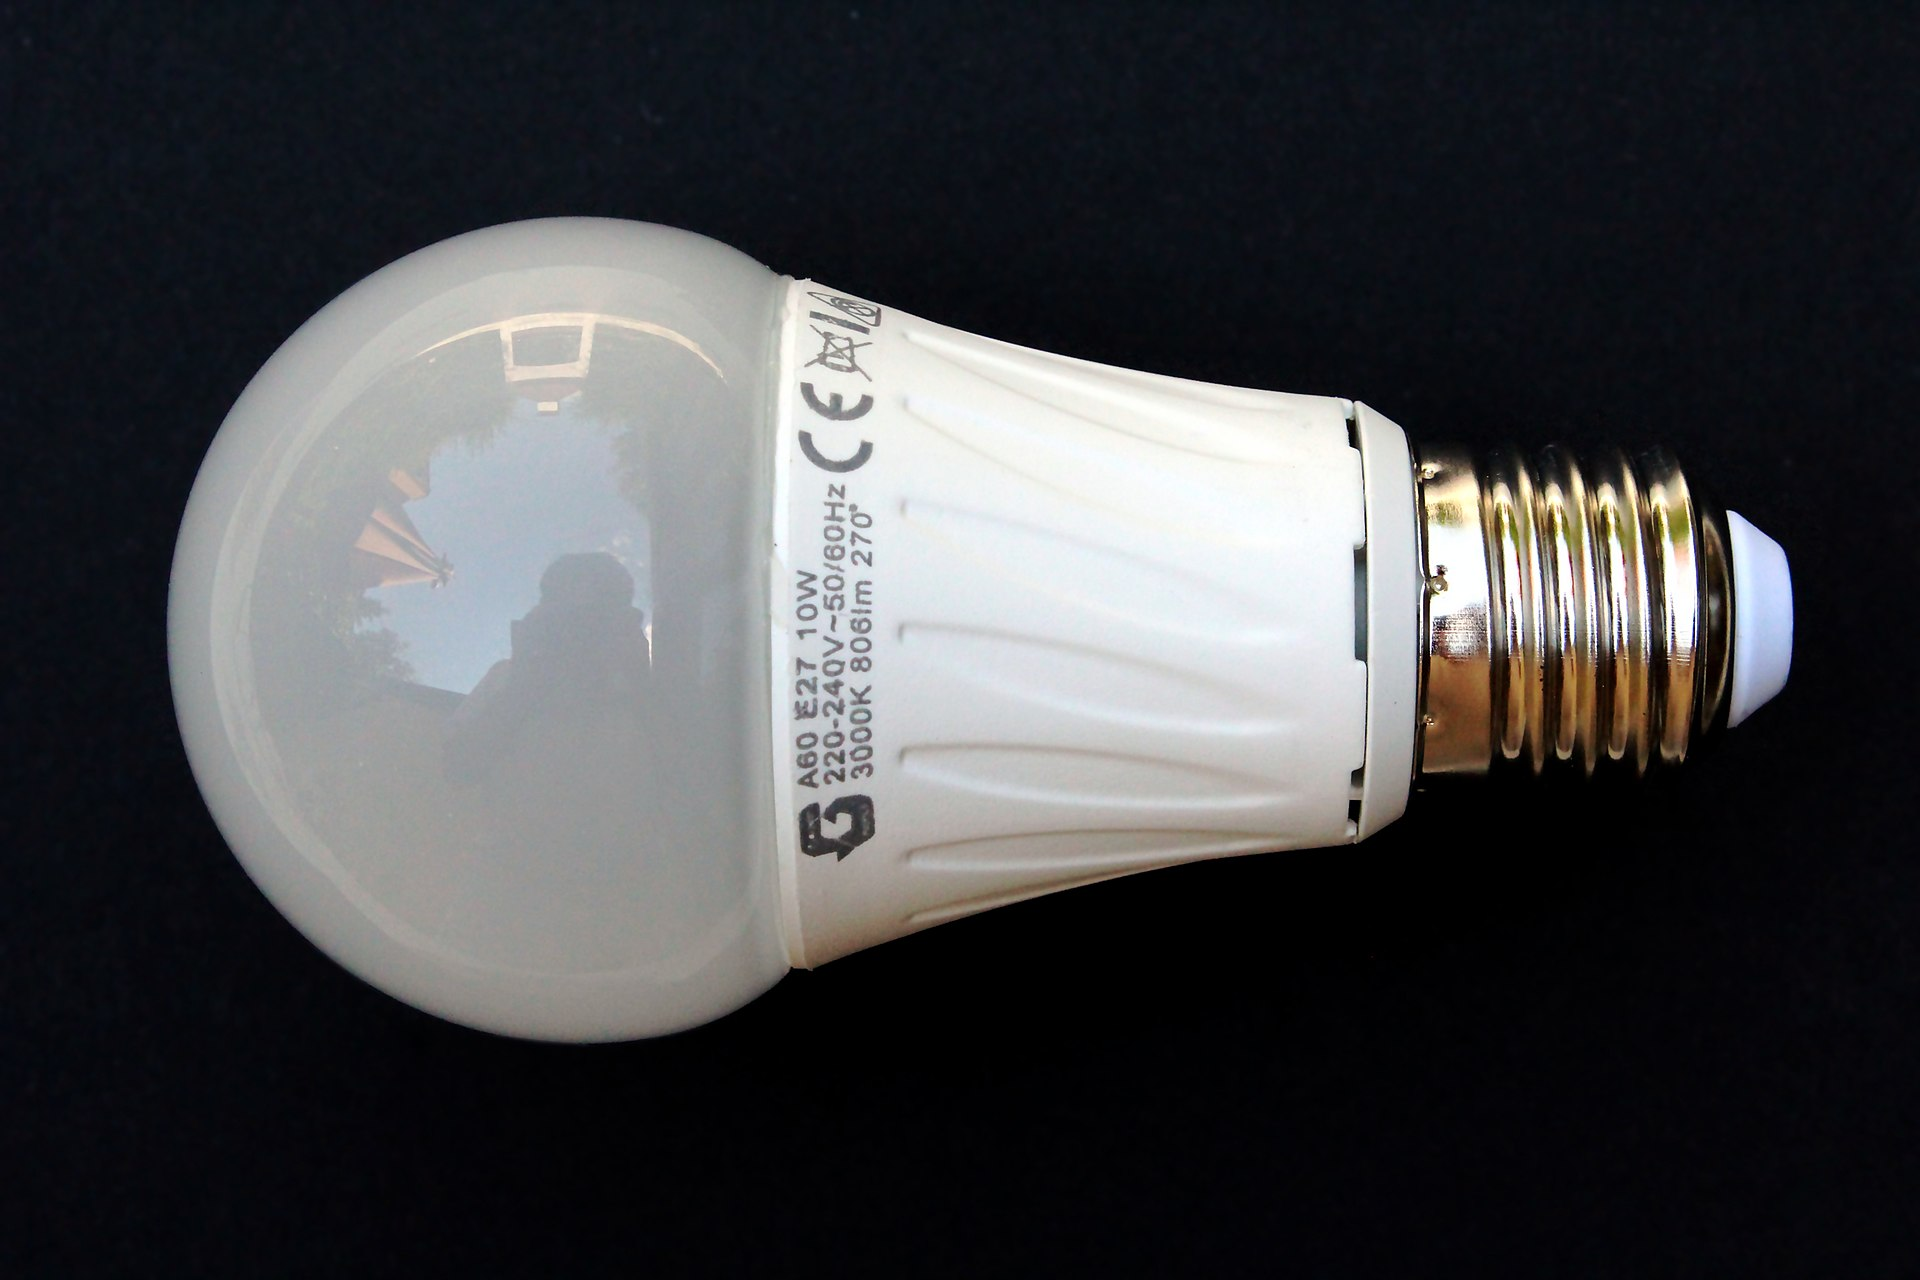 Led lamp wikipedia Bulbs led